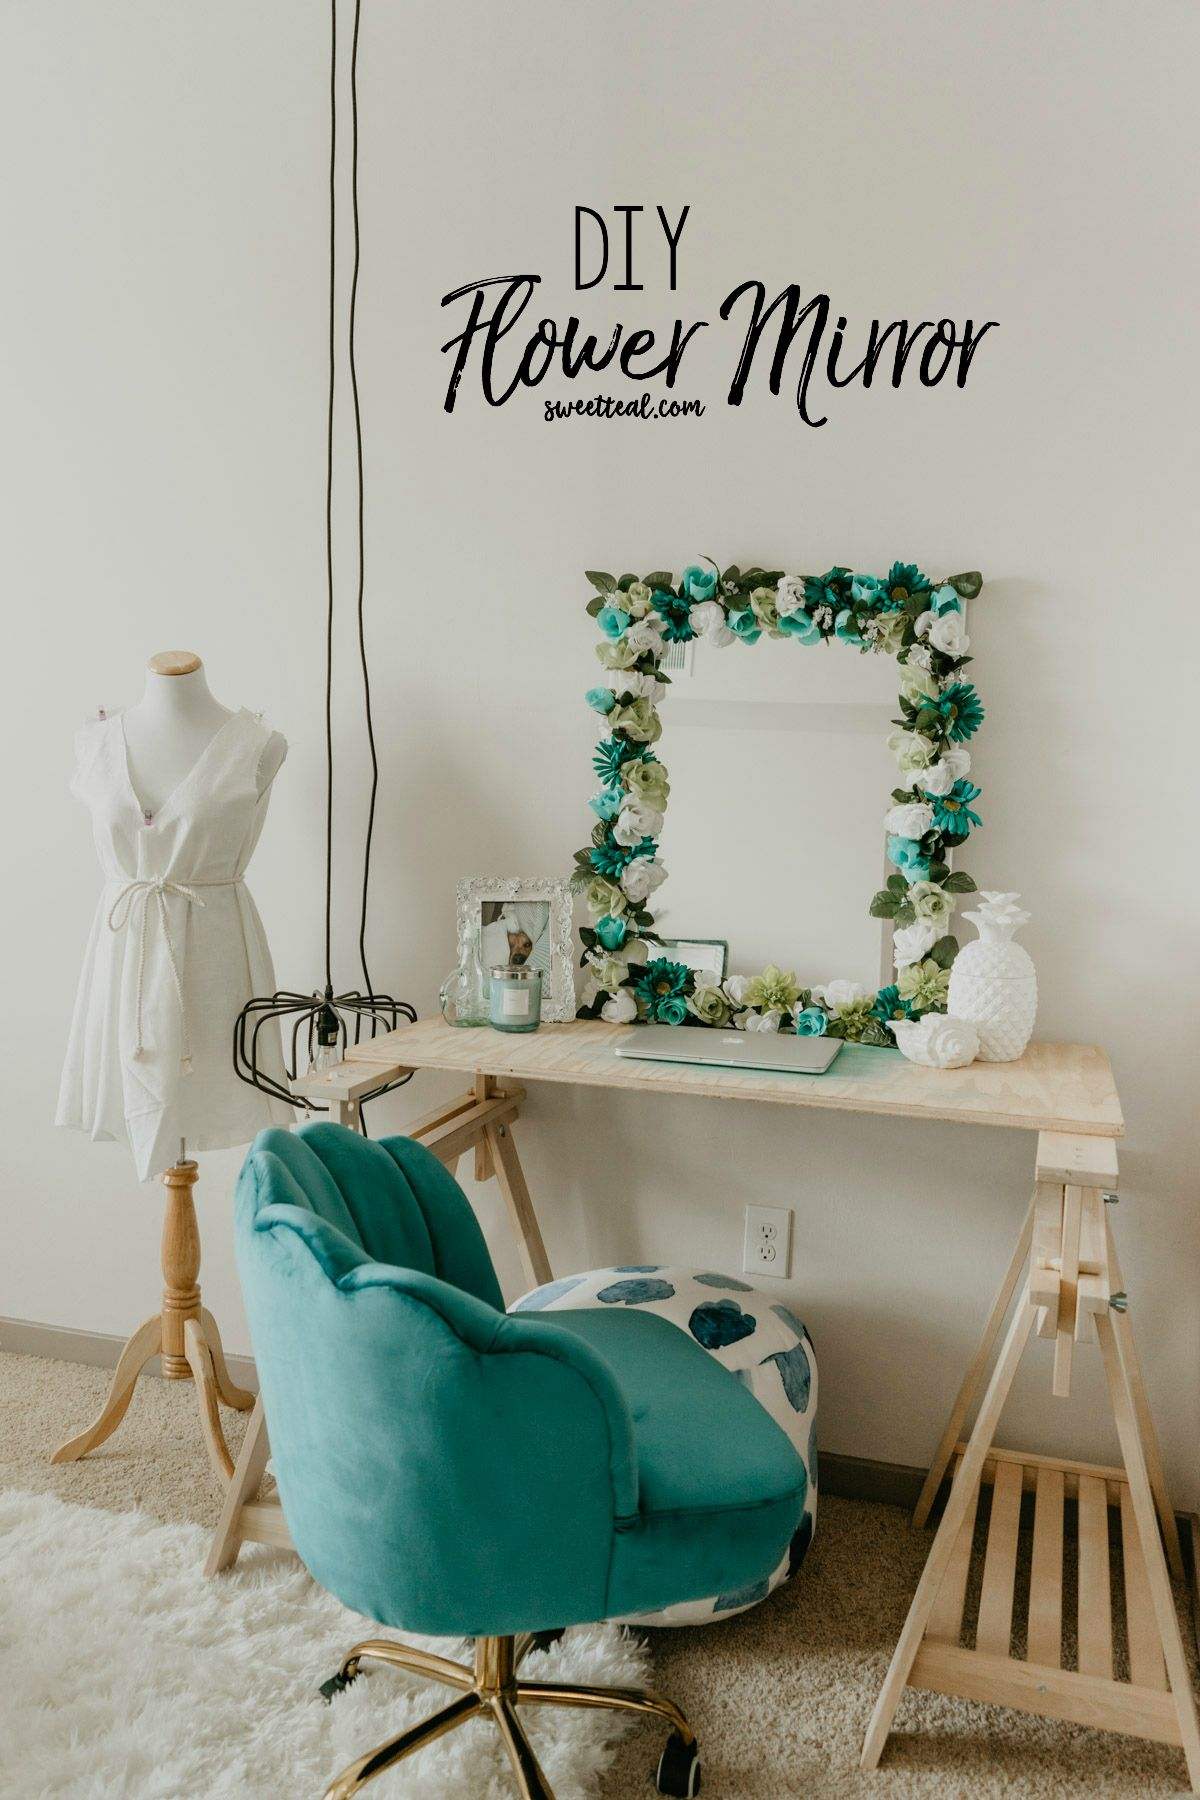 DIY Flower Mirror (With images) Girly room decor, Flower